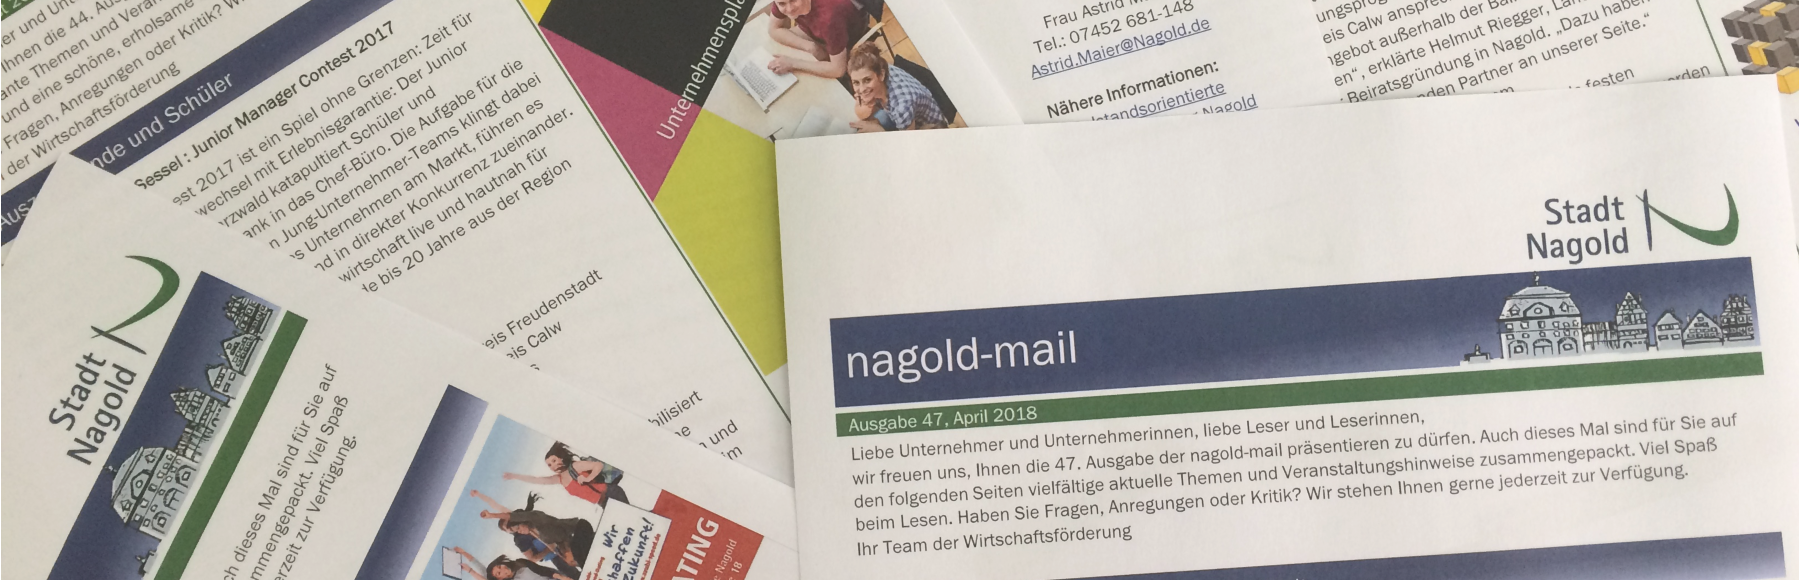 nagold-mail